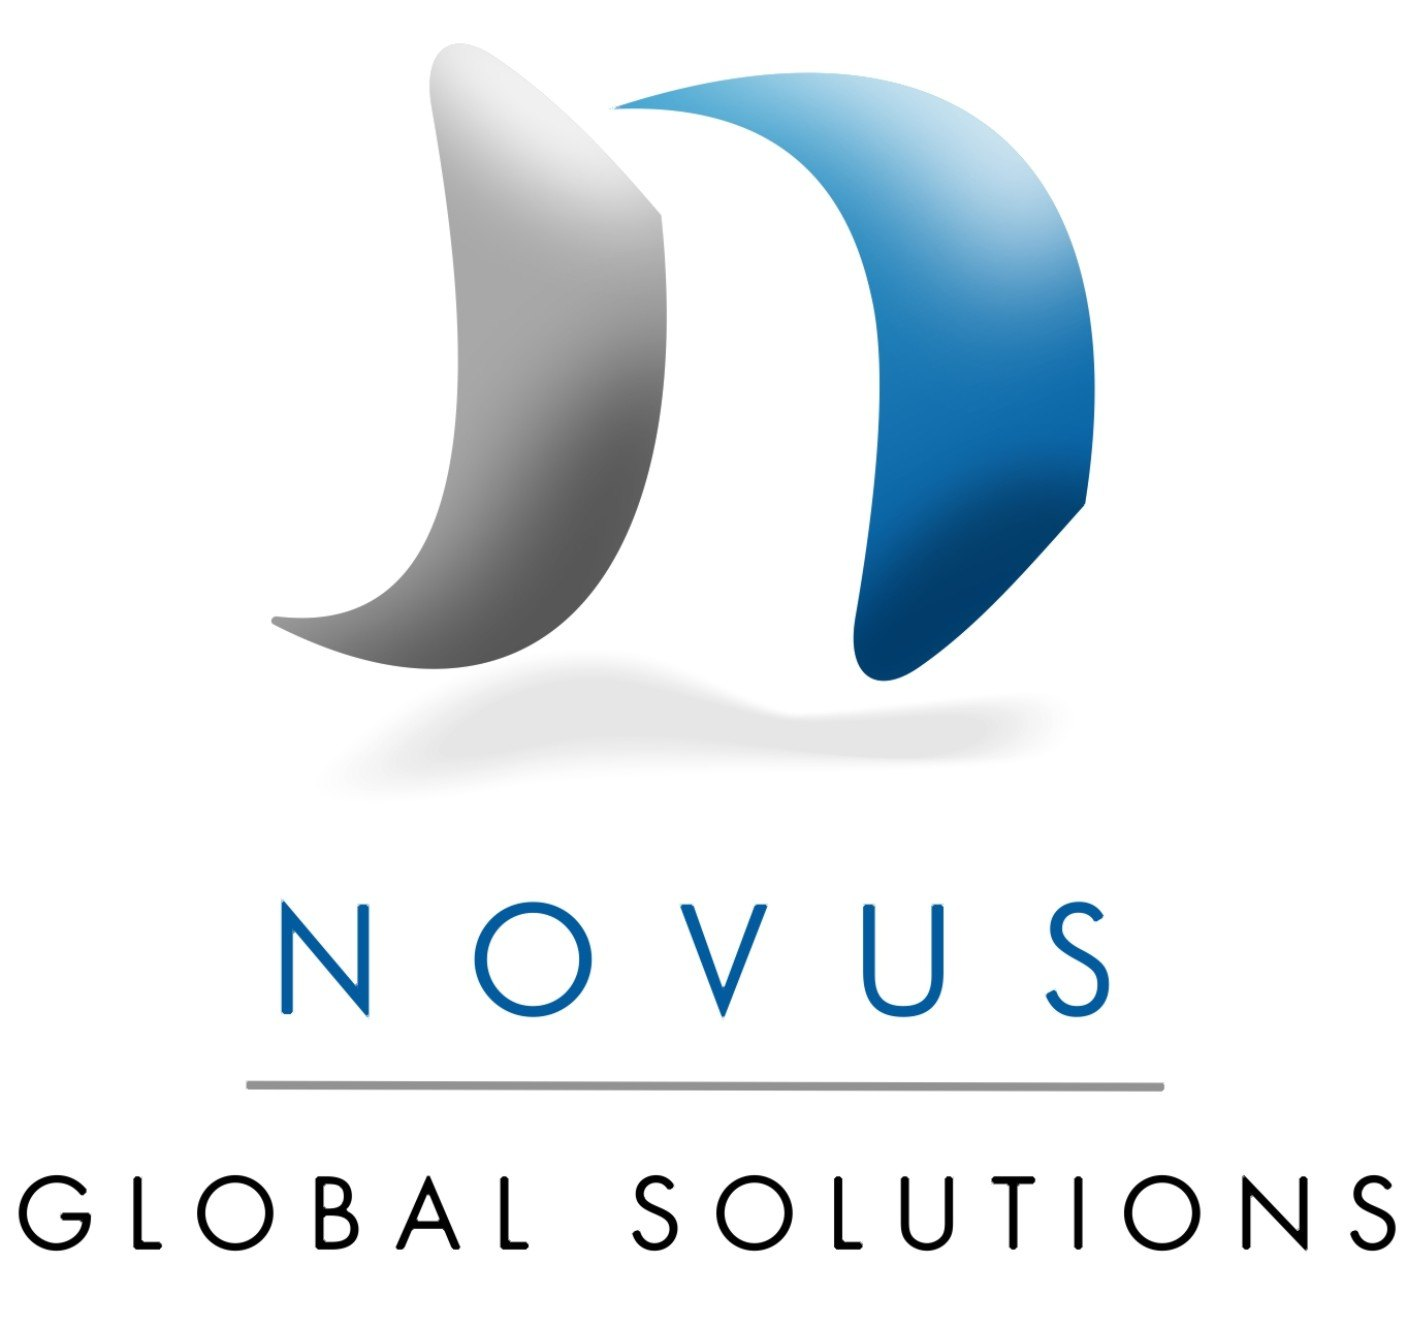 The 2016 Fastest Growing Firms: Novus Global Solutions